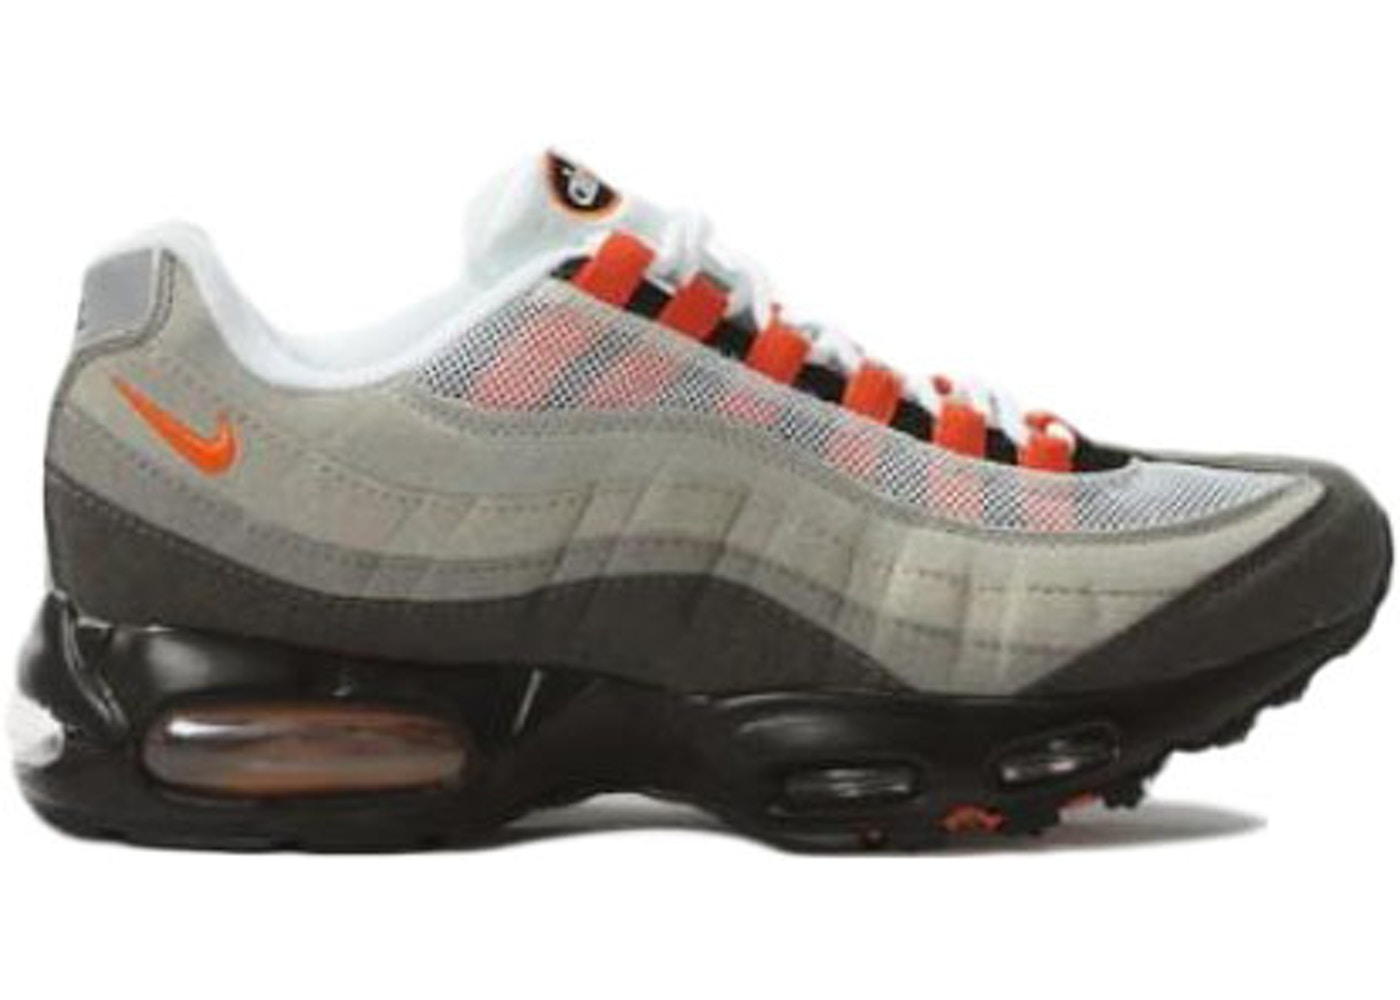 Nike Air Max 95 Shoes - New Lowest Asks 4cb7864ed3